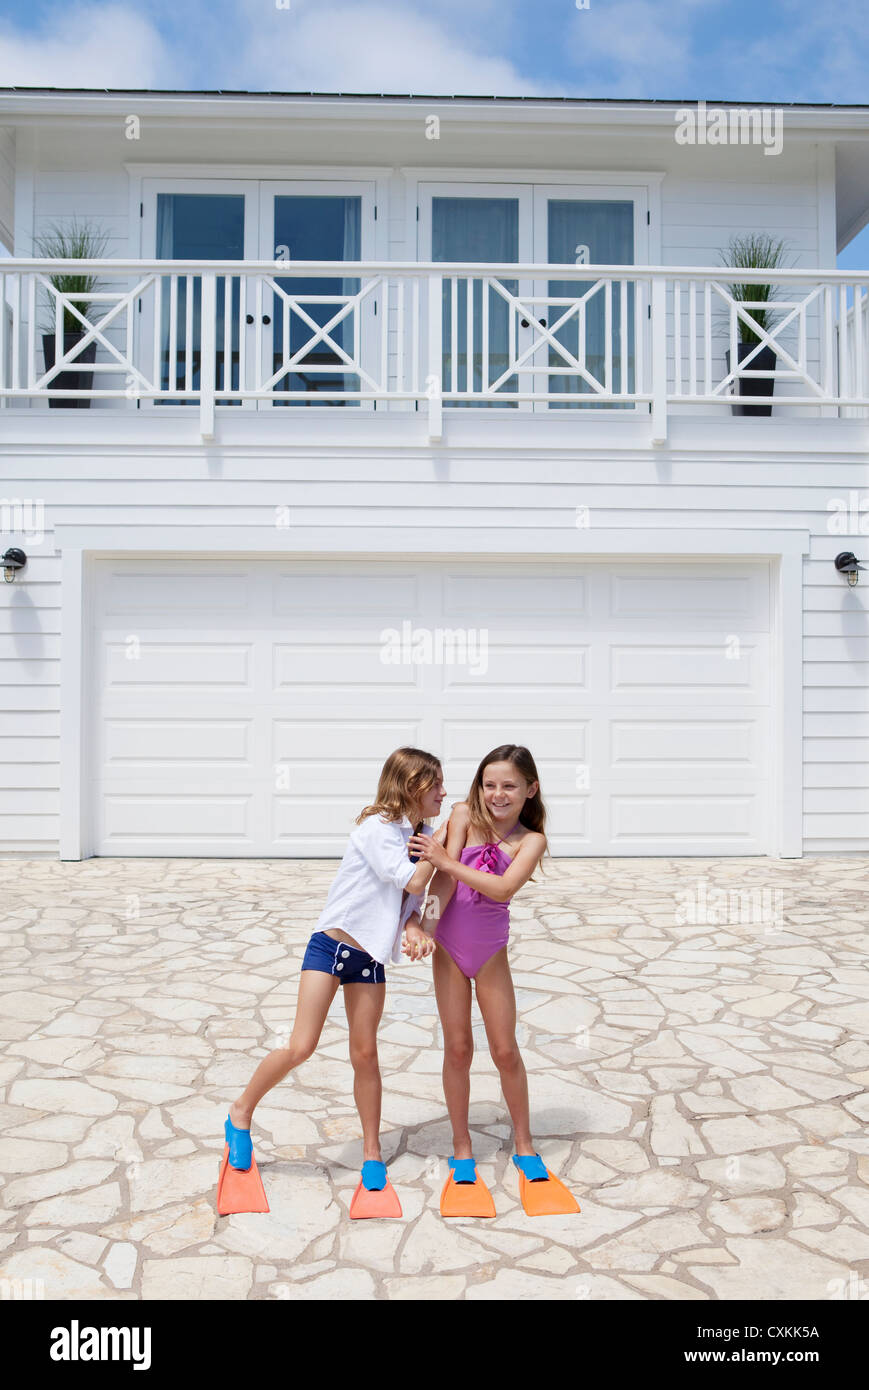 Girls in flippers in front of house - Stock Image